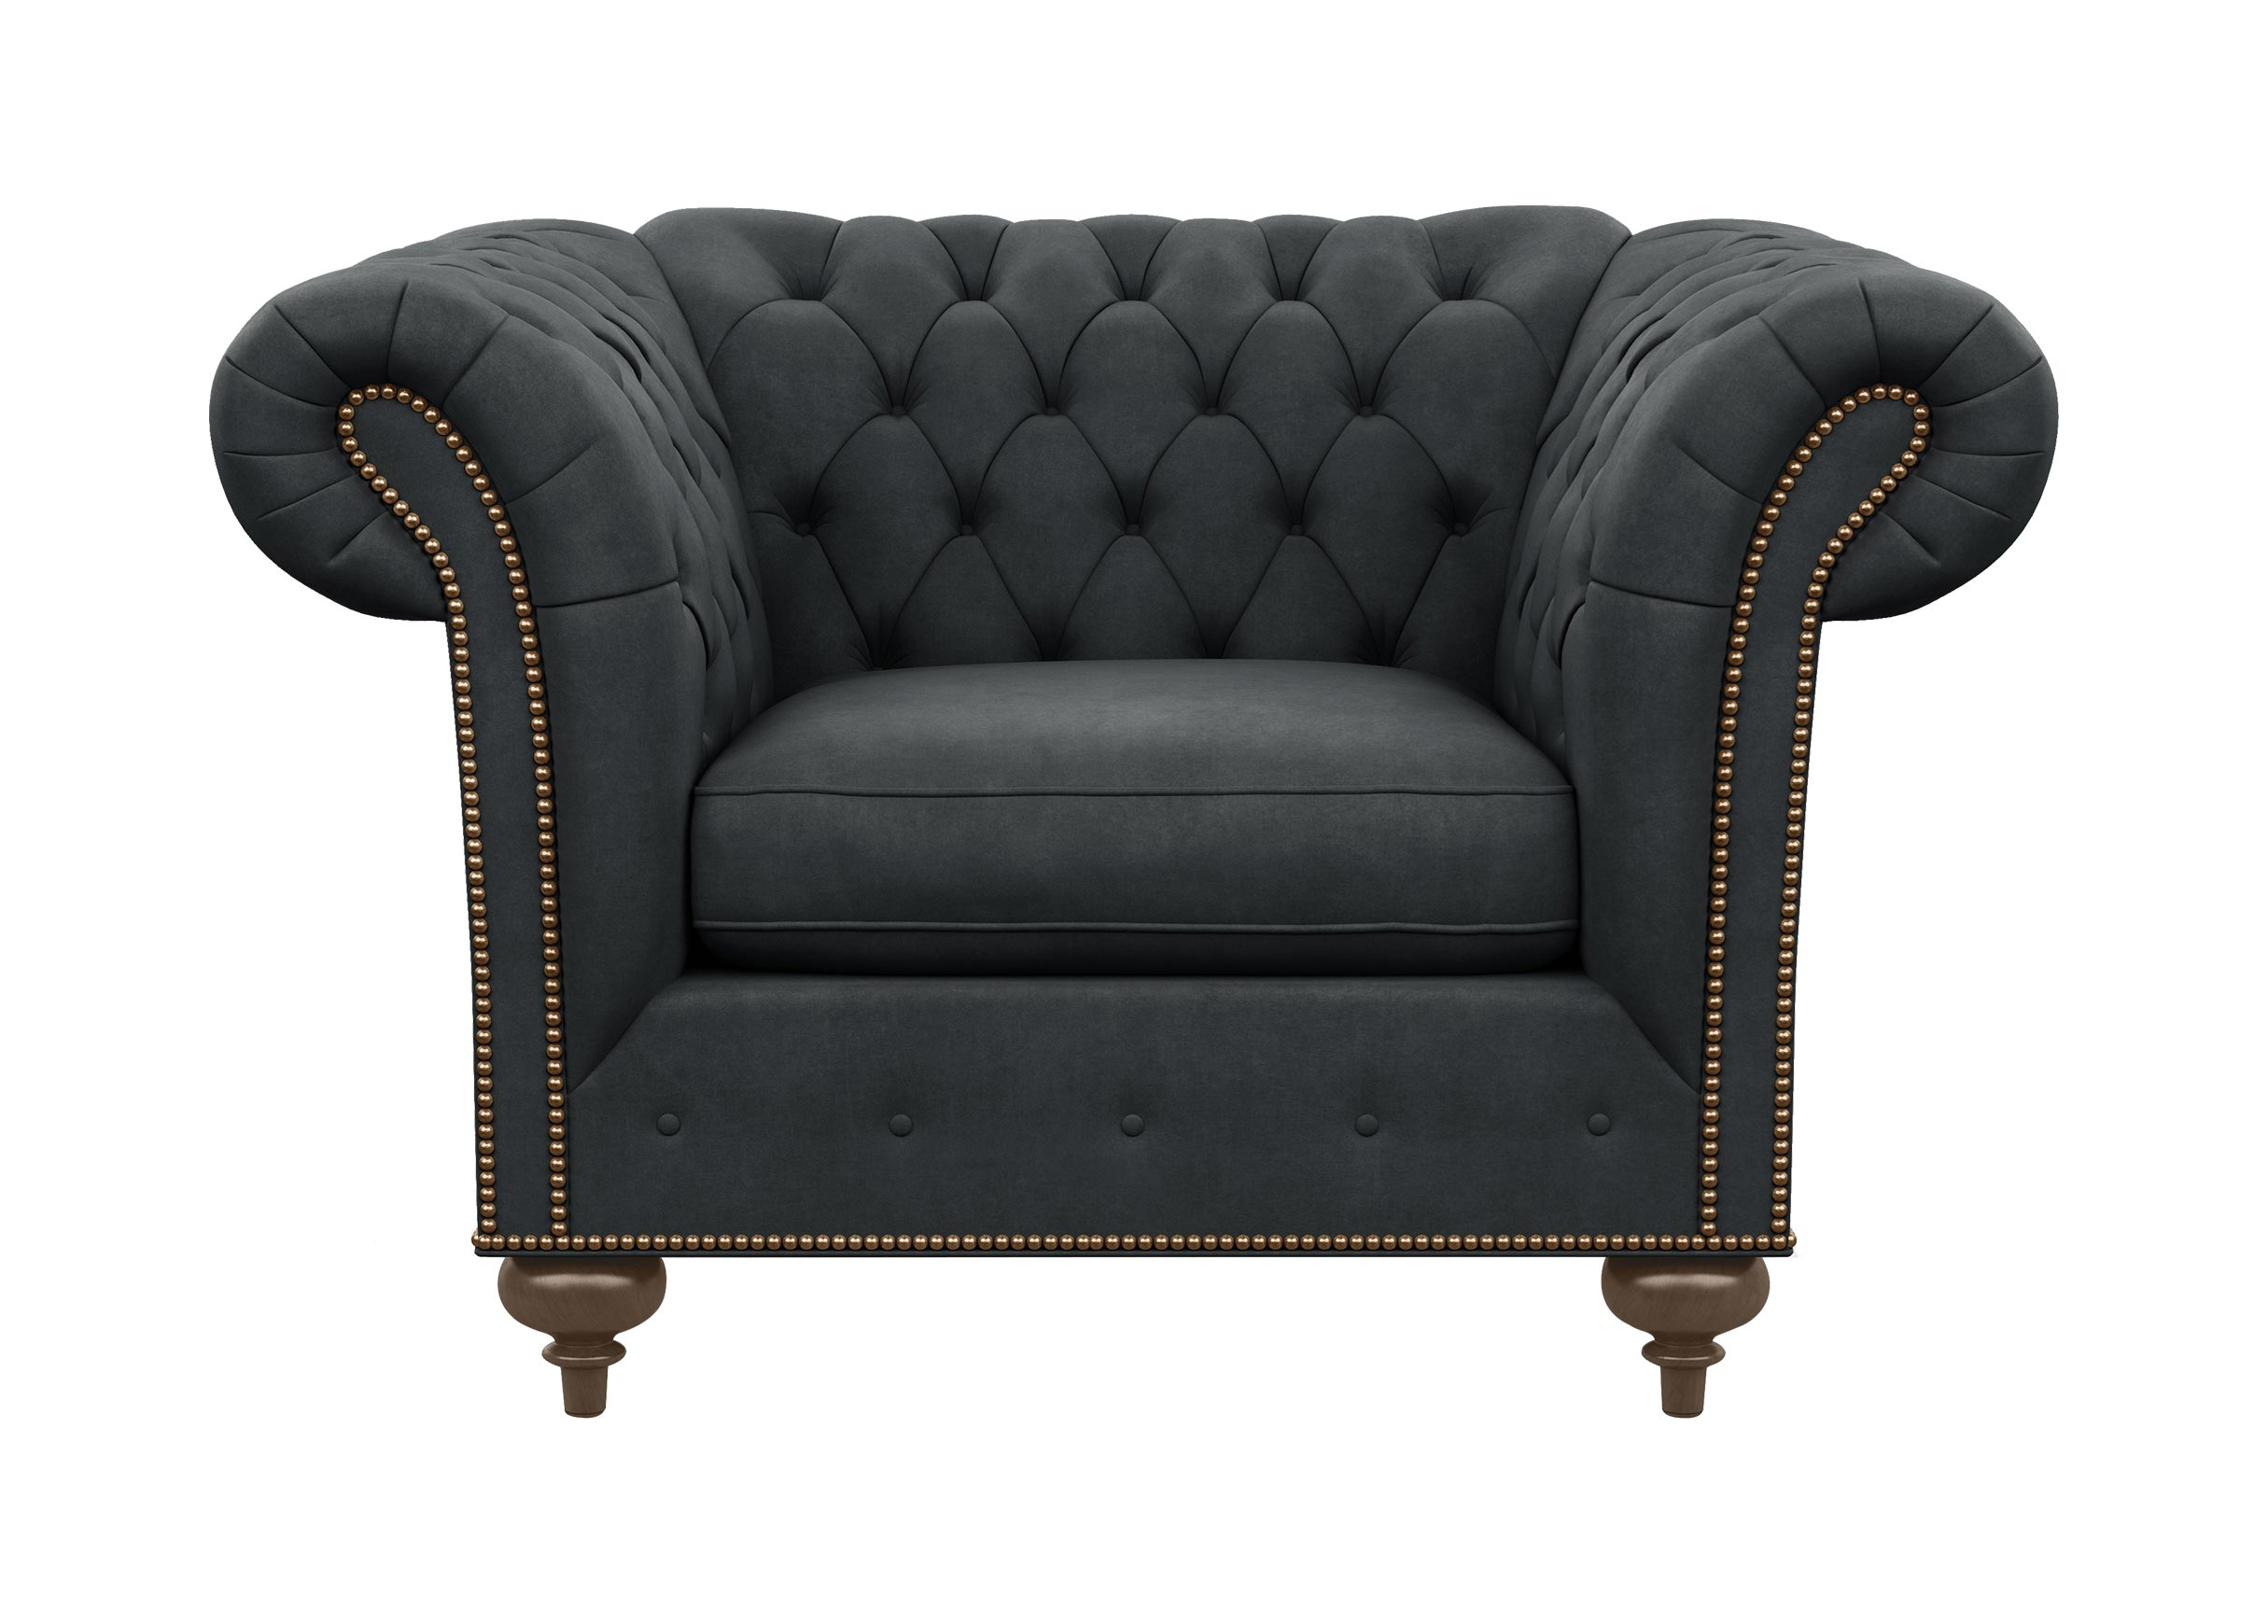 Mansfield Chair | Chairs & Chaises | Ethan Allen In Mansfield Graphite Velvet Sofa Chairs (Image 10 of 20)